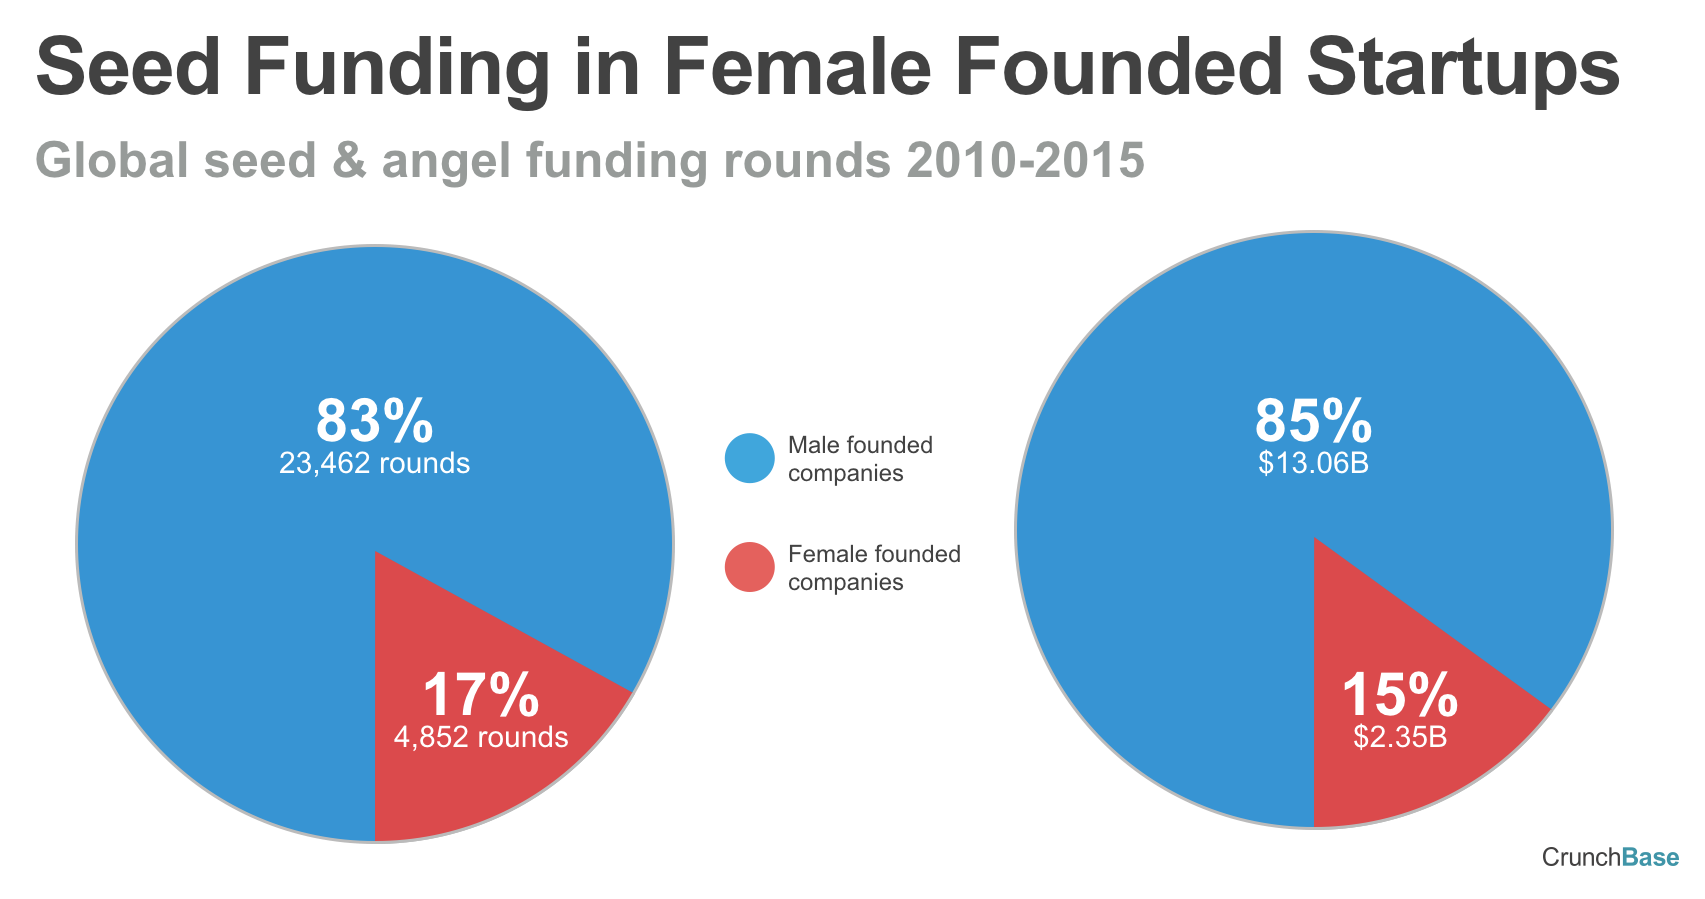 Seed Funding Rounds in Female Founded Startups